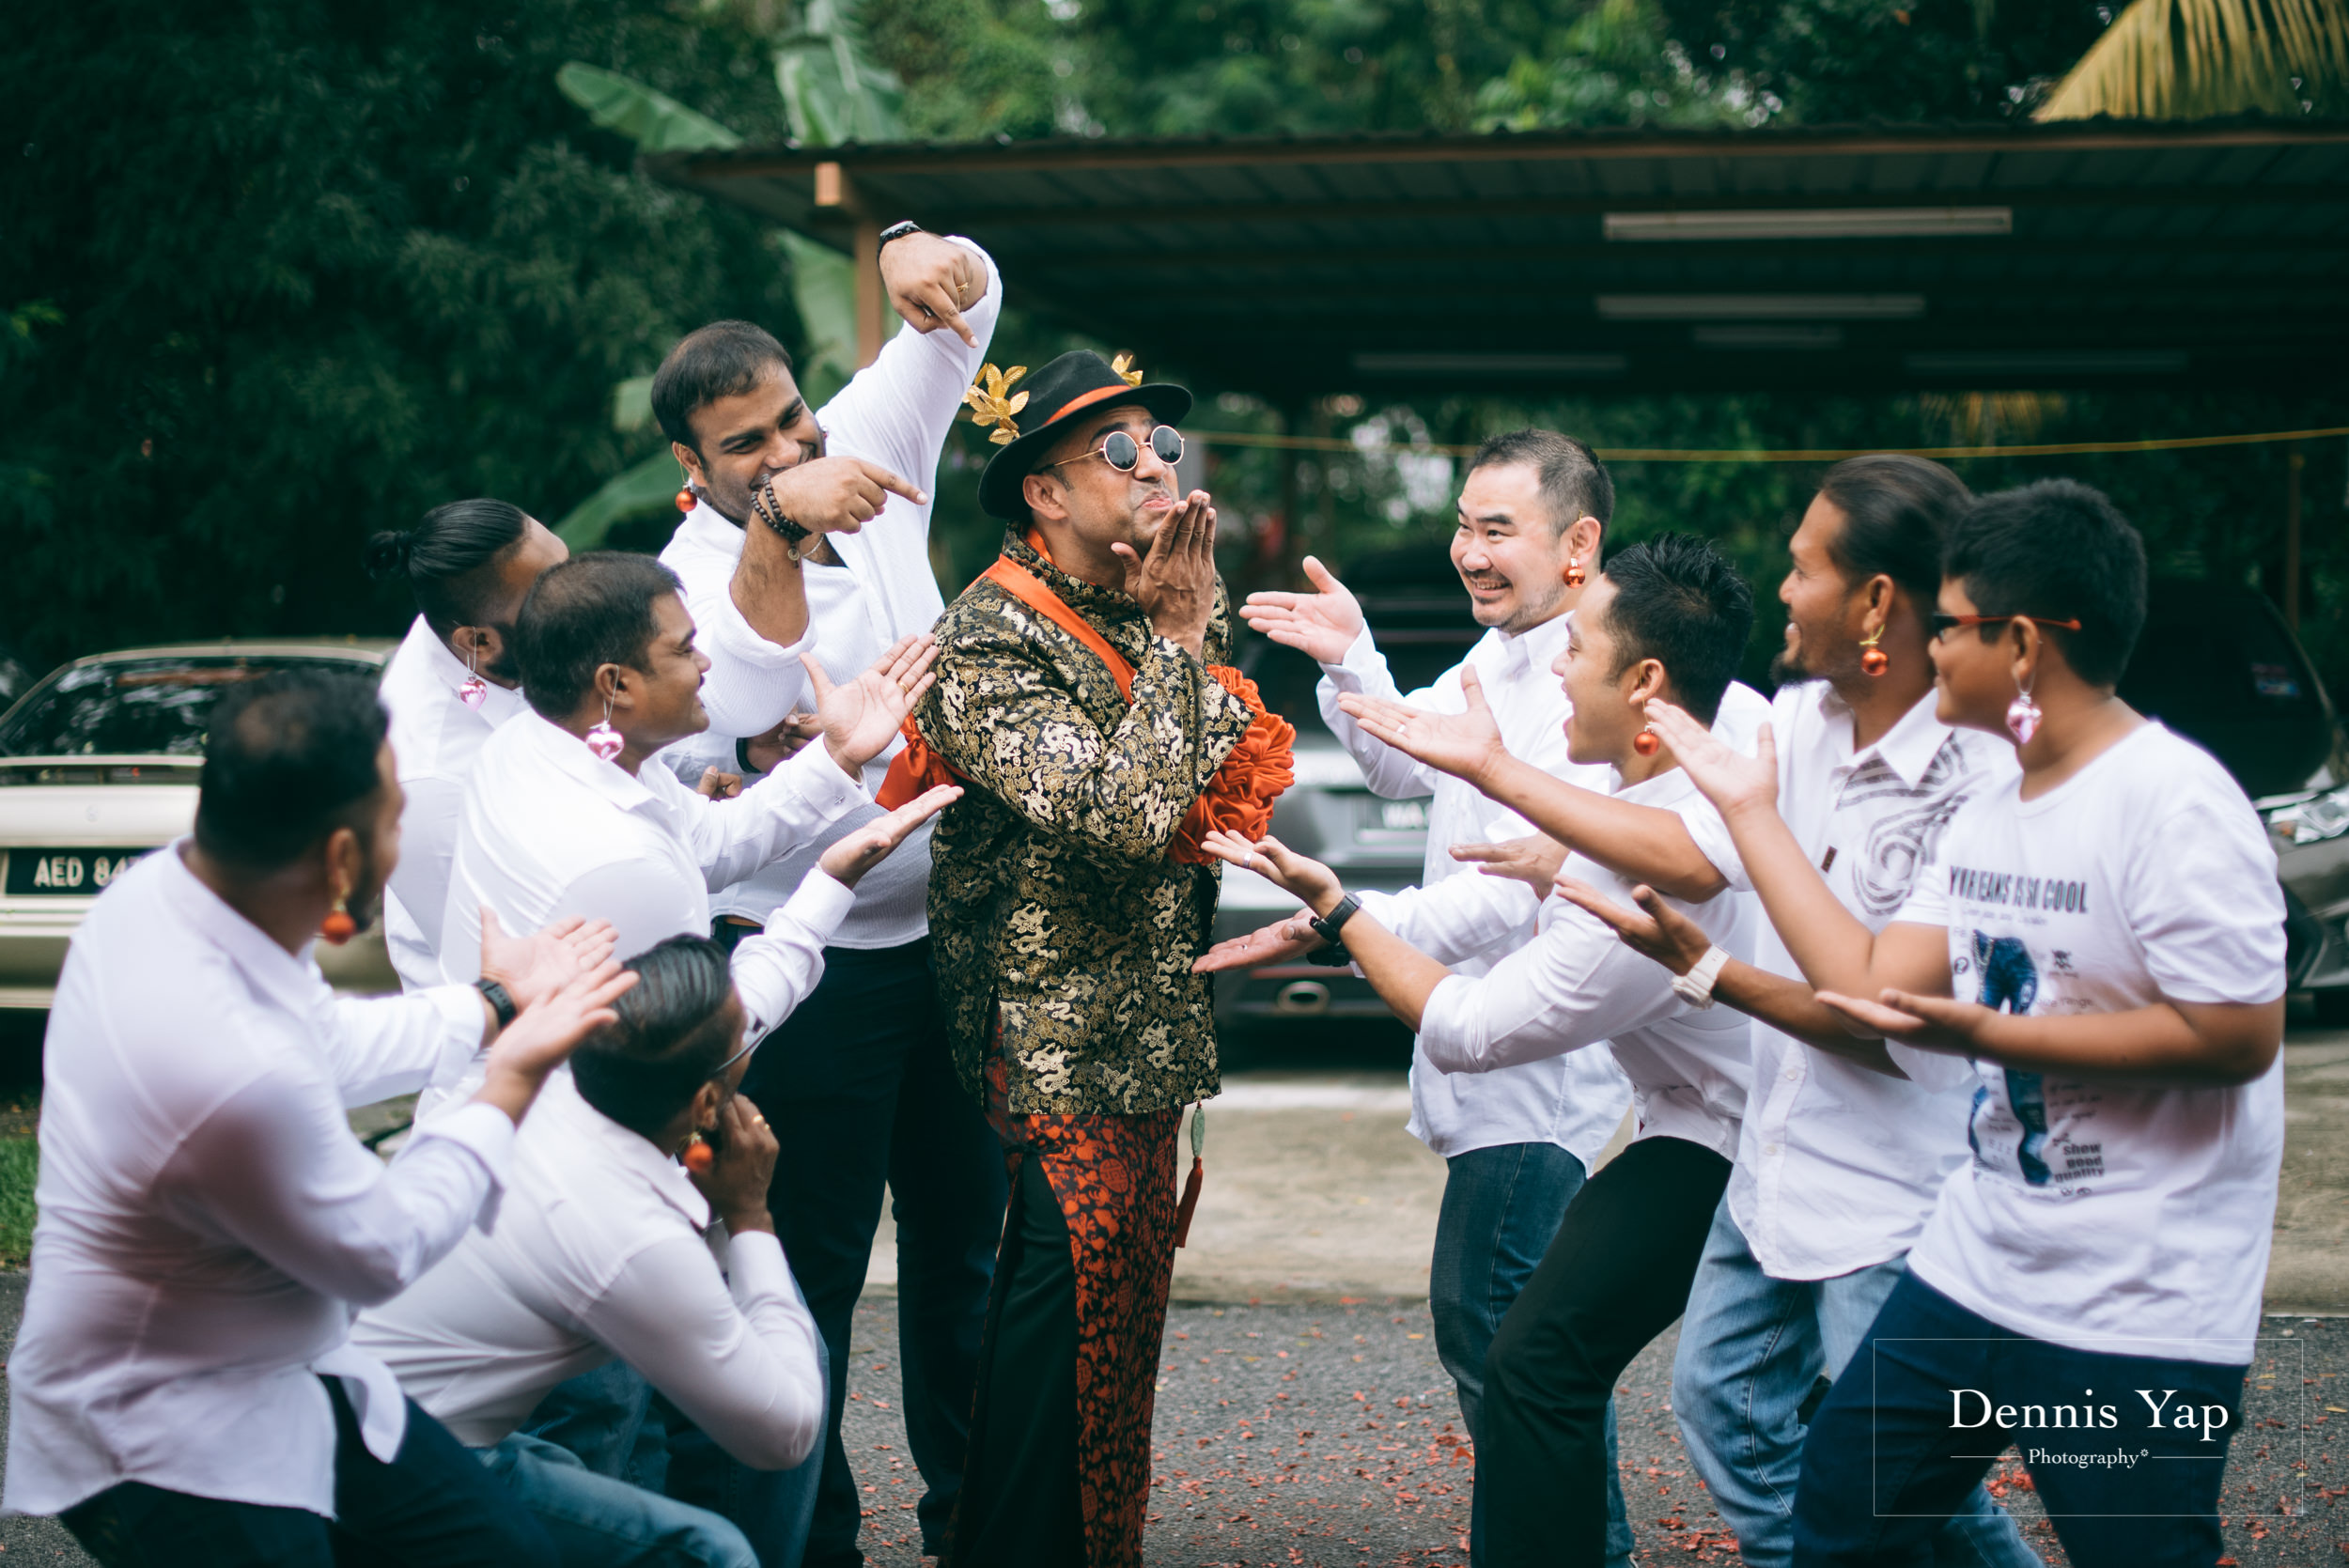 azmi zahraa wedding day gate crash traditional chinese and malay wedding dennis yap malaysia photographer-9.jpg